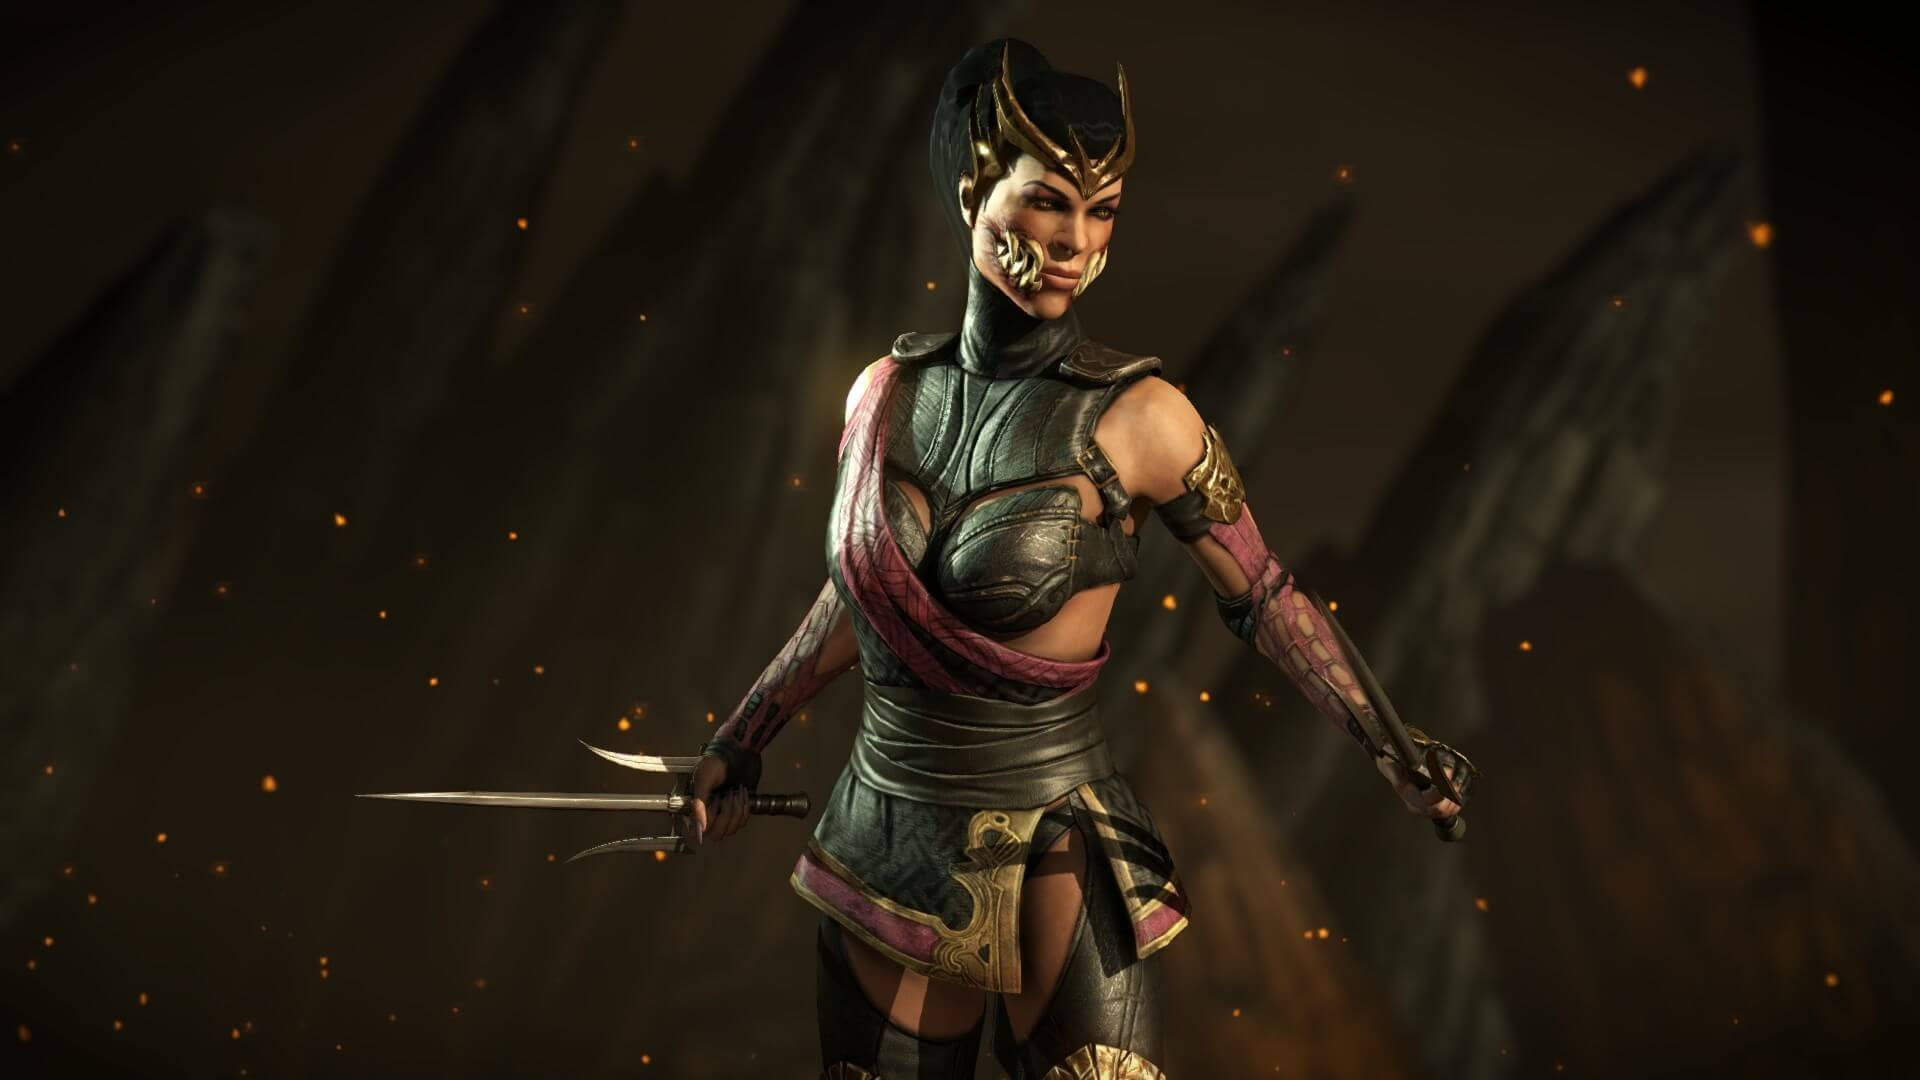 Mileena was added in addition to MK 11 at the request of players